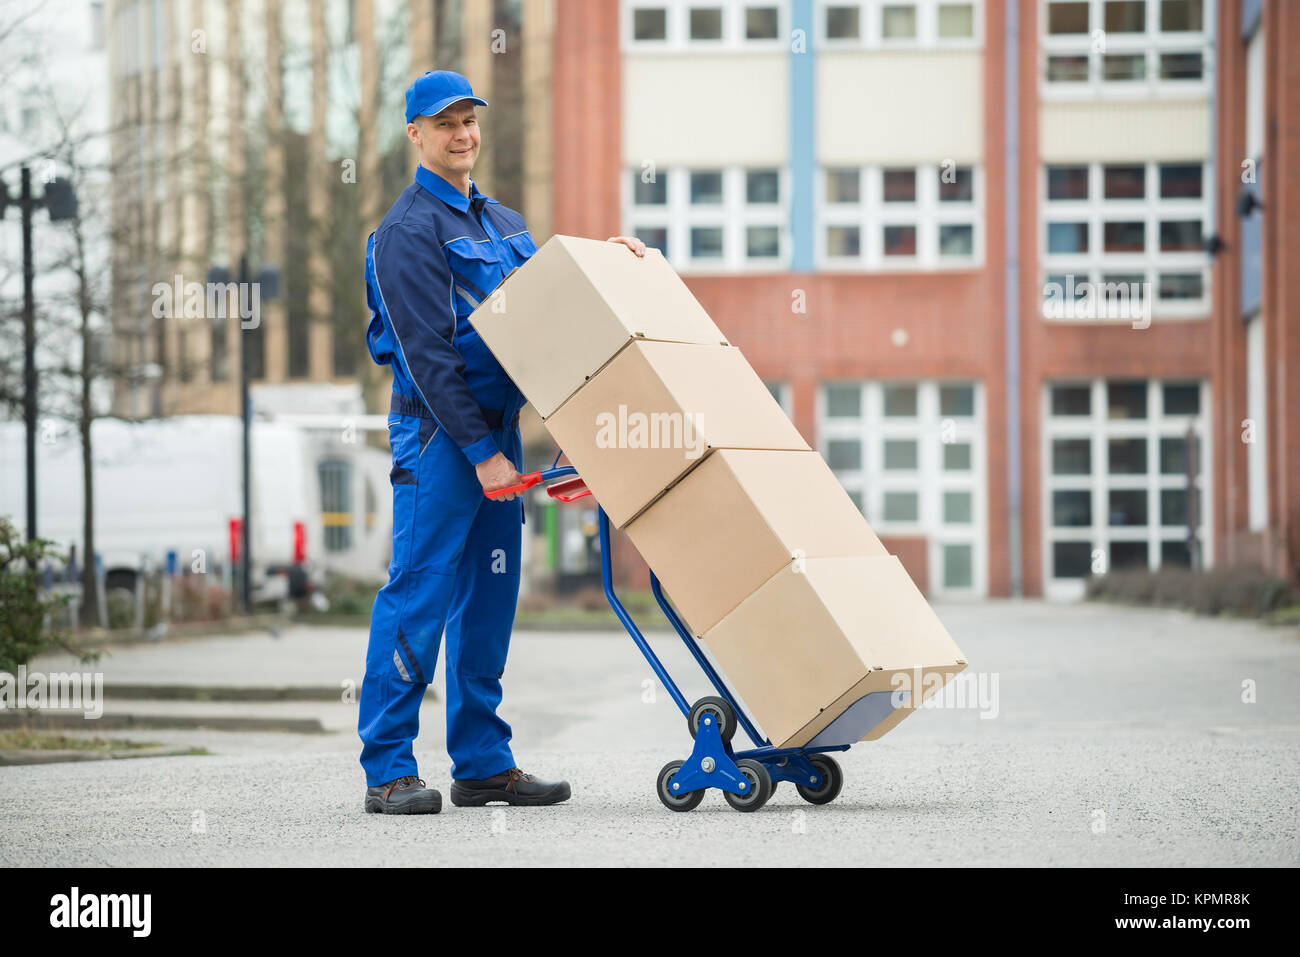 Deliveryman Holding Trolley Loaded With Cardboard Boxes - Stock Image